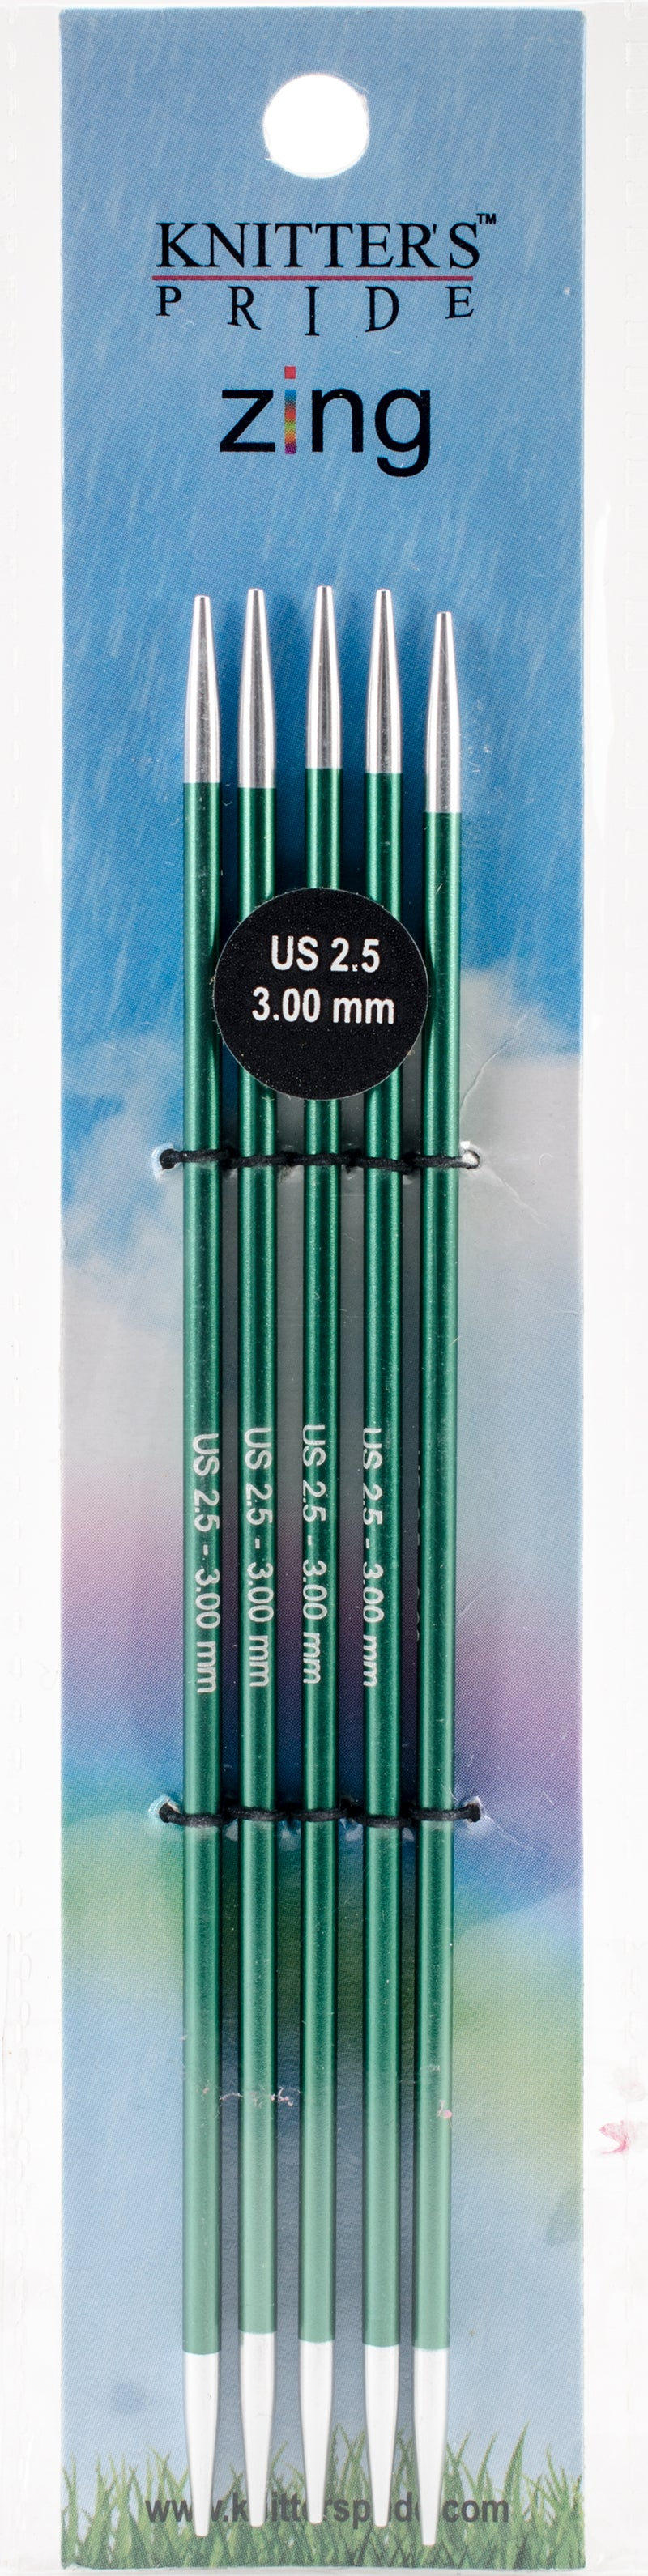 "Knitter's Pride-Zing Double Pointed Needles 6""-Size 2.5/3mm - Pens N More"